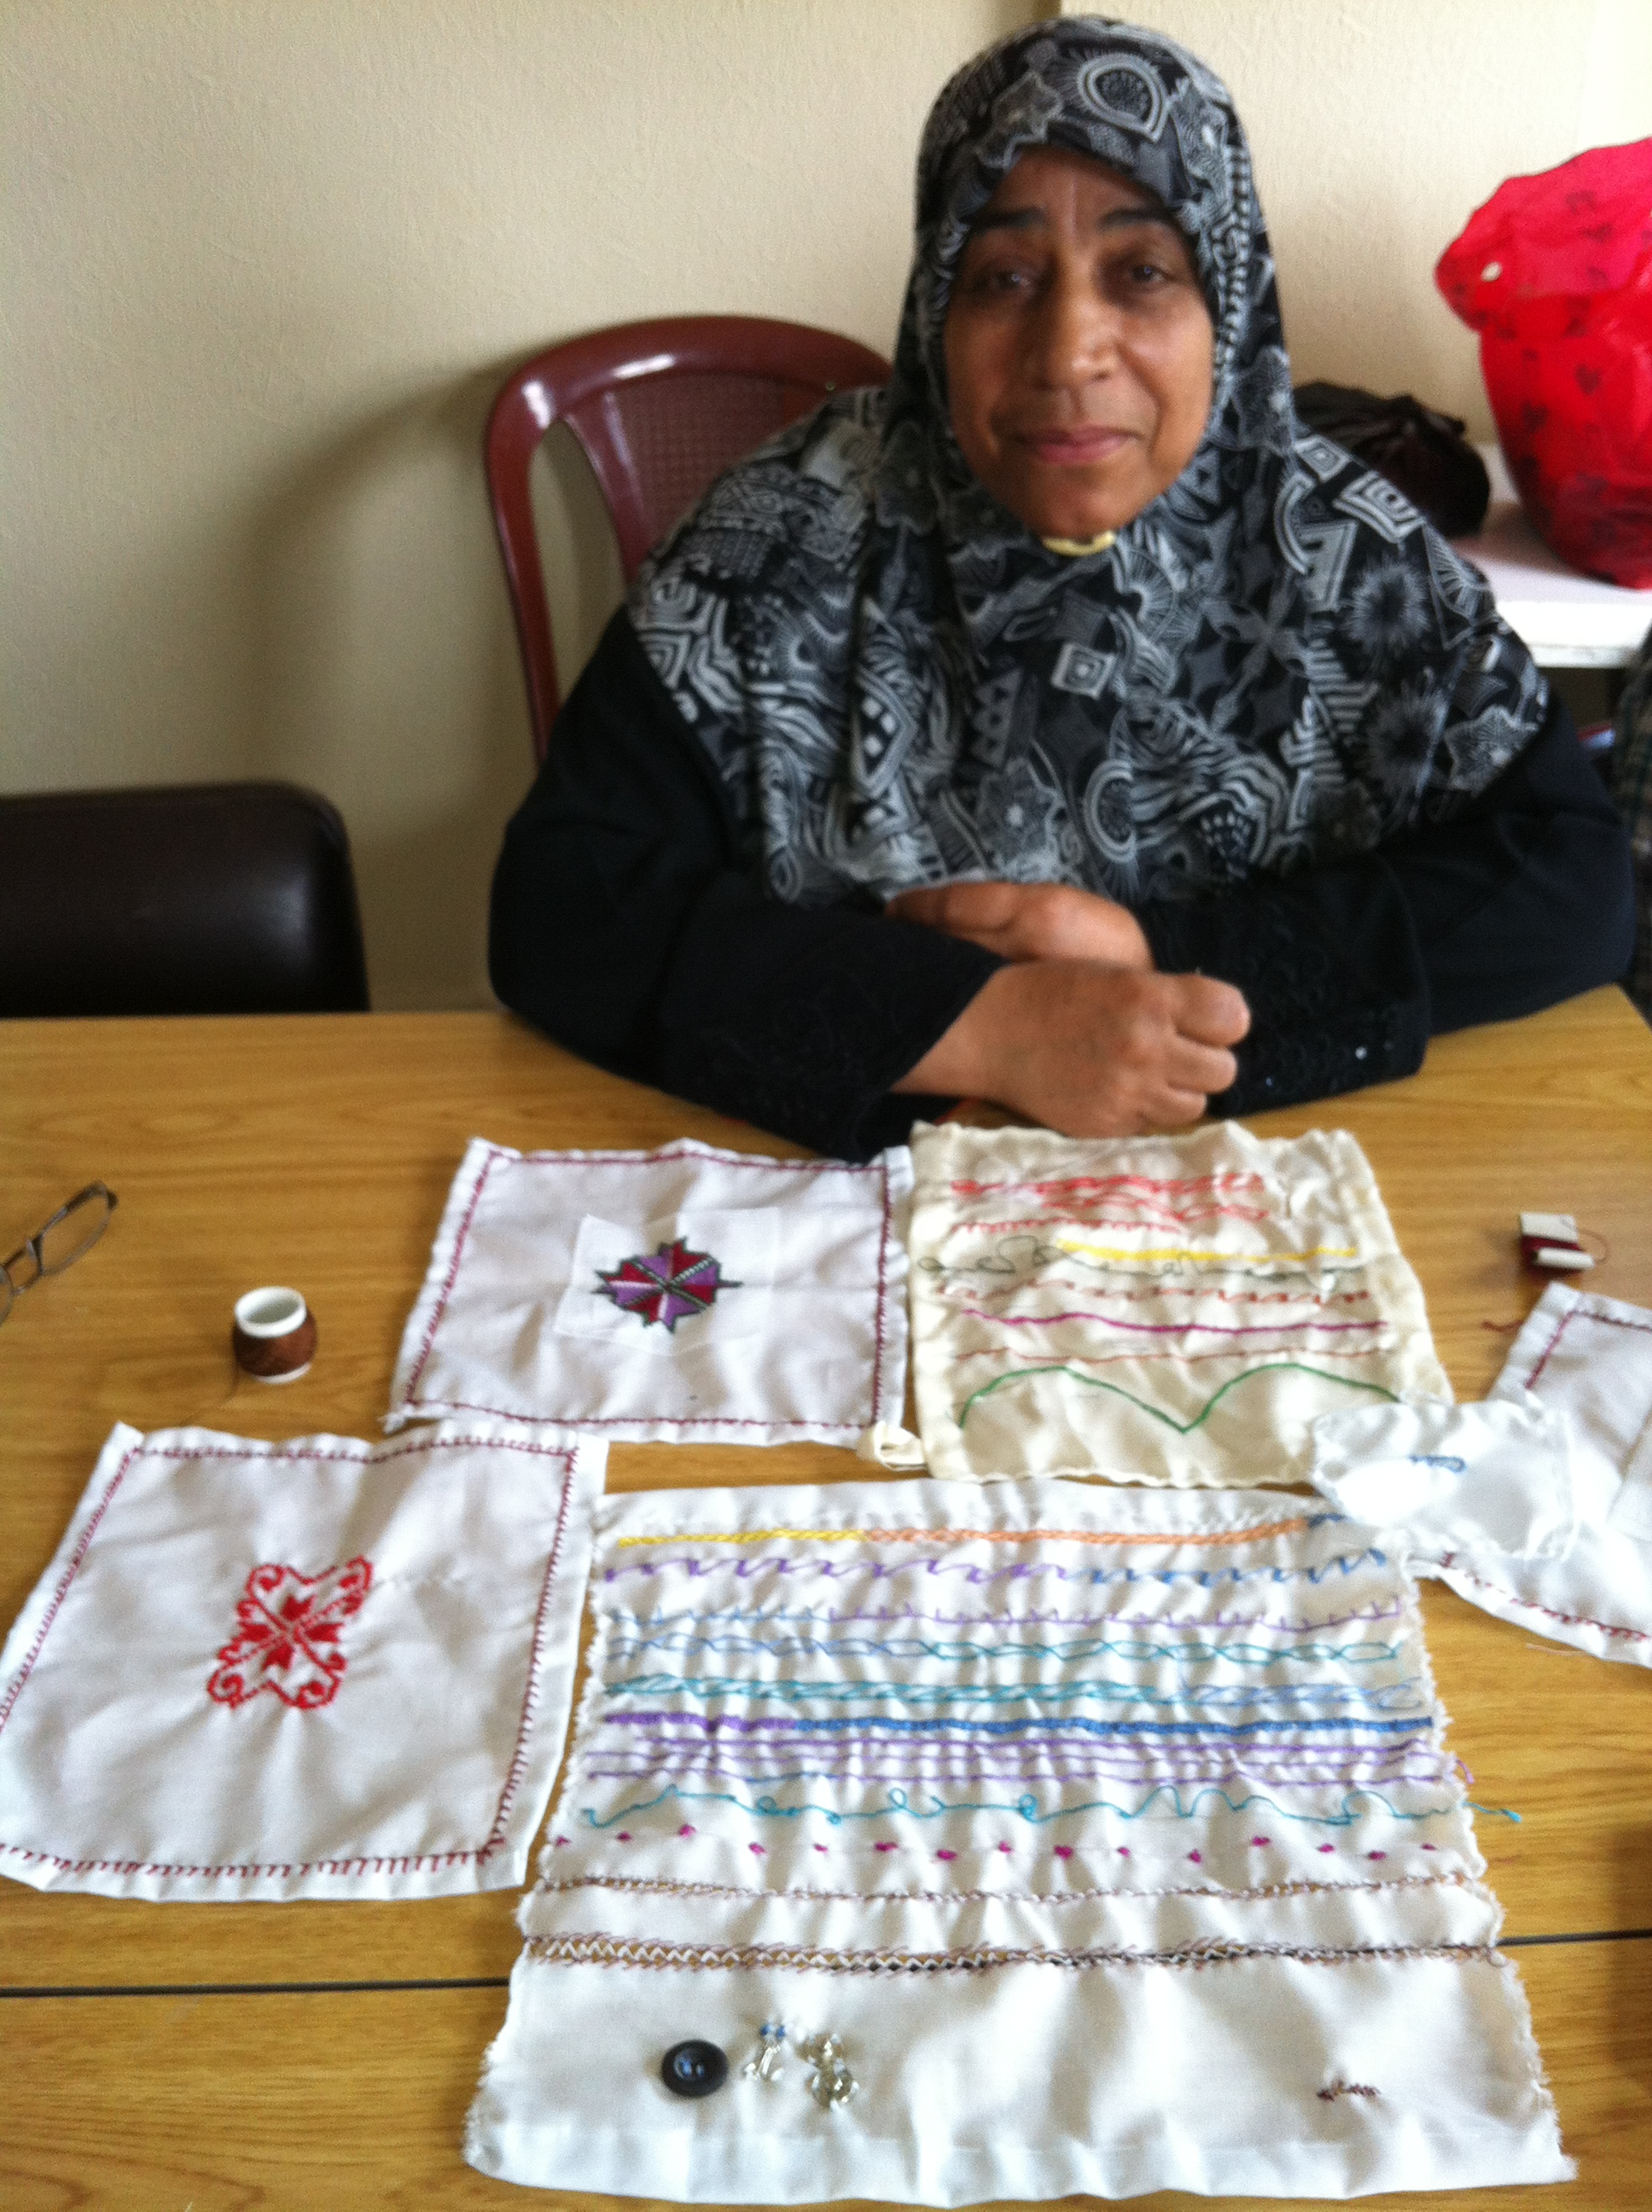 Bour Al Chamali Camp/ Mme Abla Ibrahim - 38years old a widowed women that is enjoying her first experience in broidery and is so exited to start building her job in Tatreez cooperative